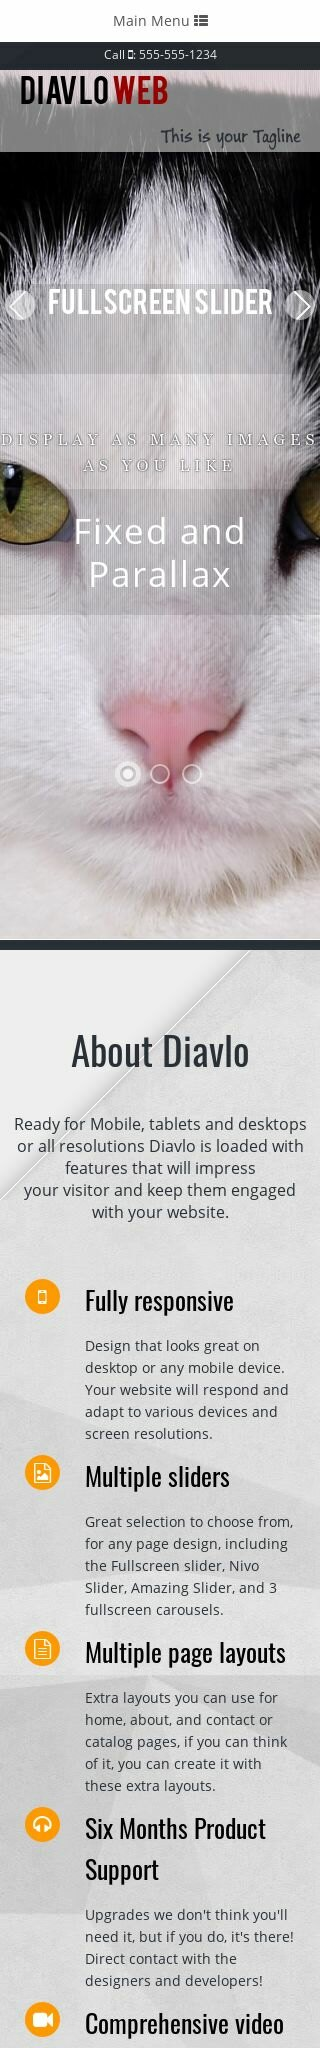 Mobile: Cats Dreamweaver Template